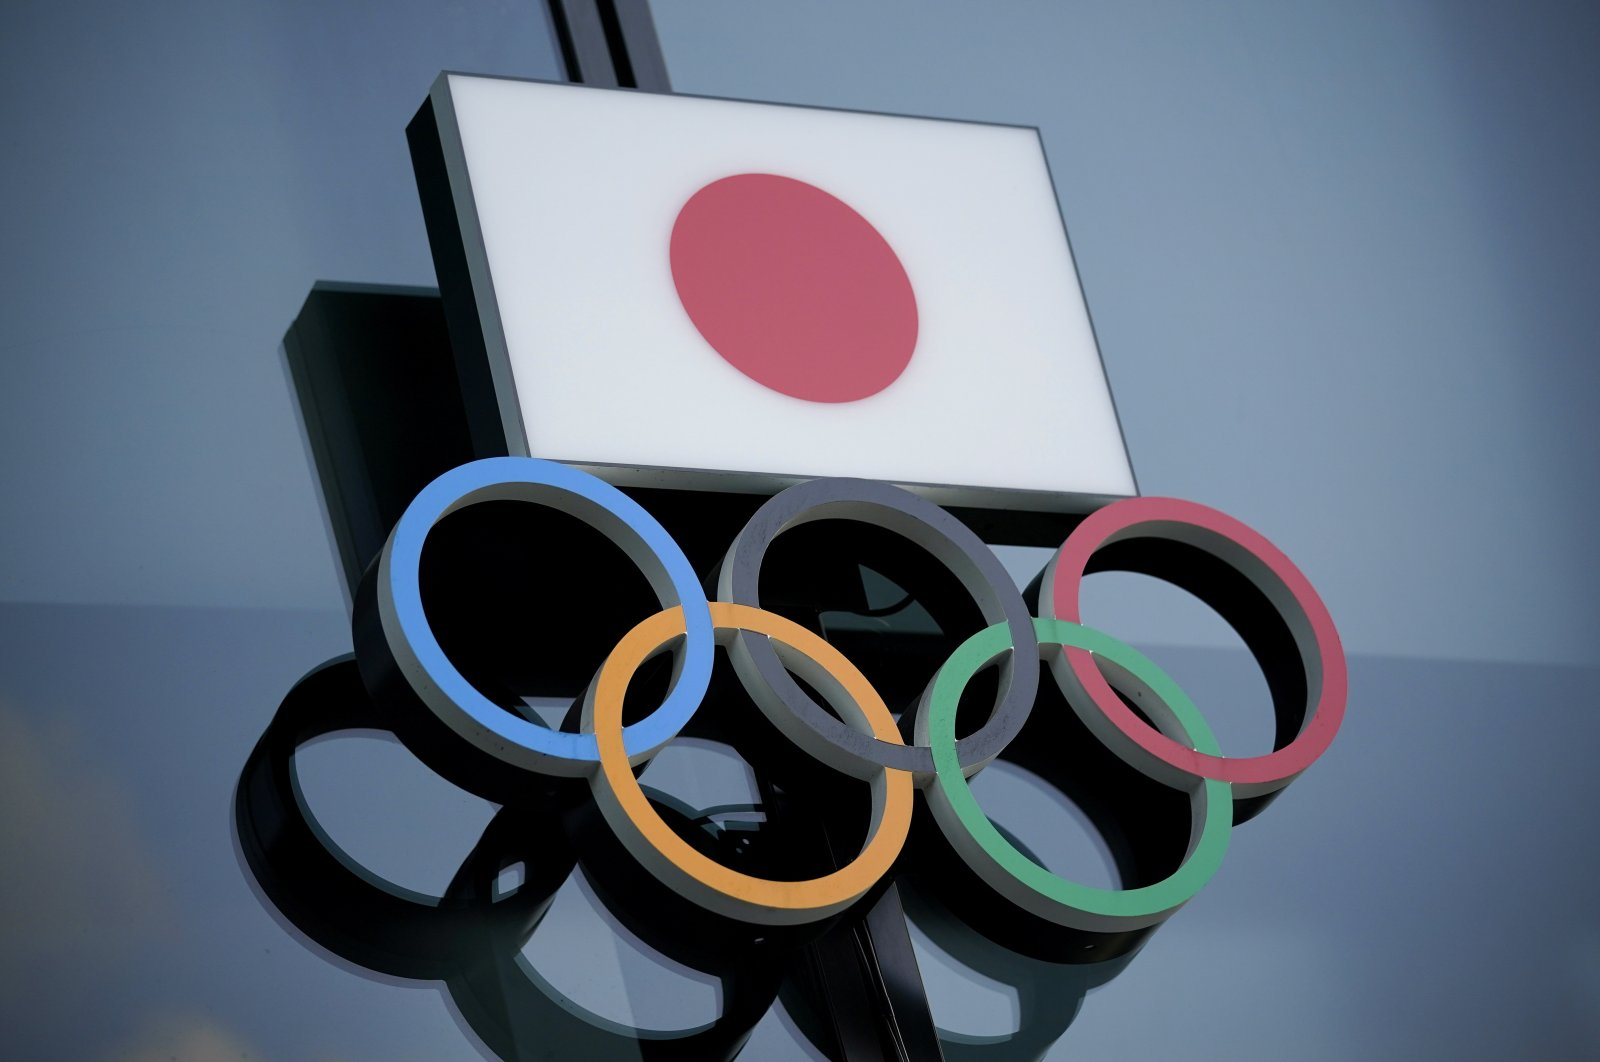 Olympic rings with the Japanese national flag on display at the Japan Olympic Museum in Tokyo, Japan, June 29, 2020. (EPA Photo)